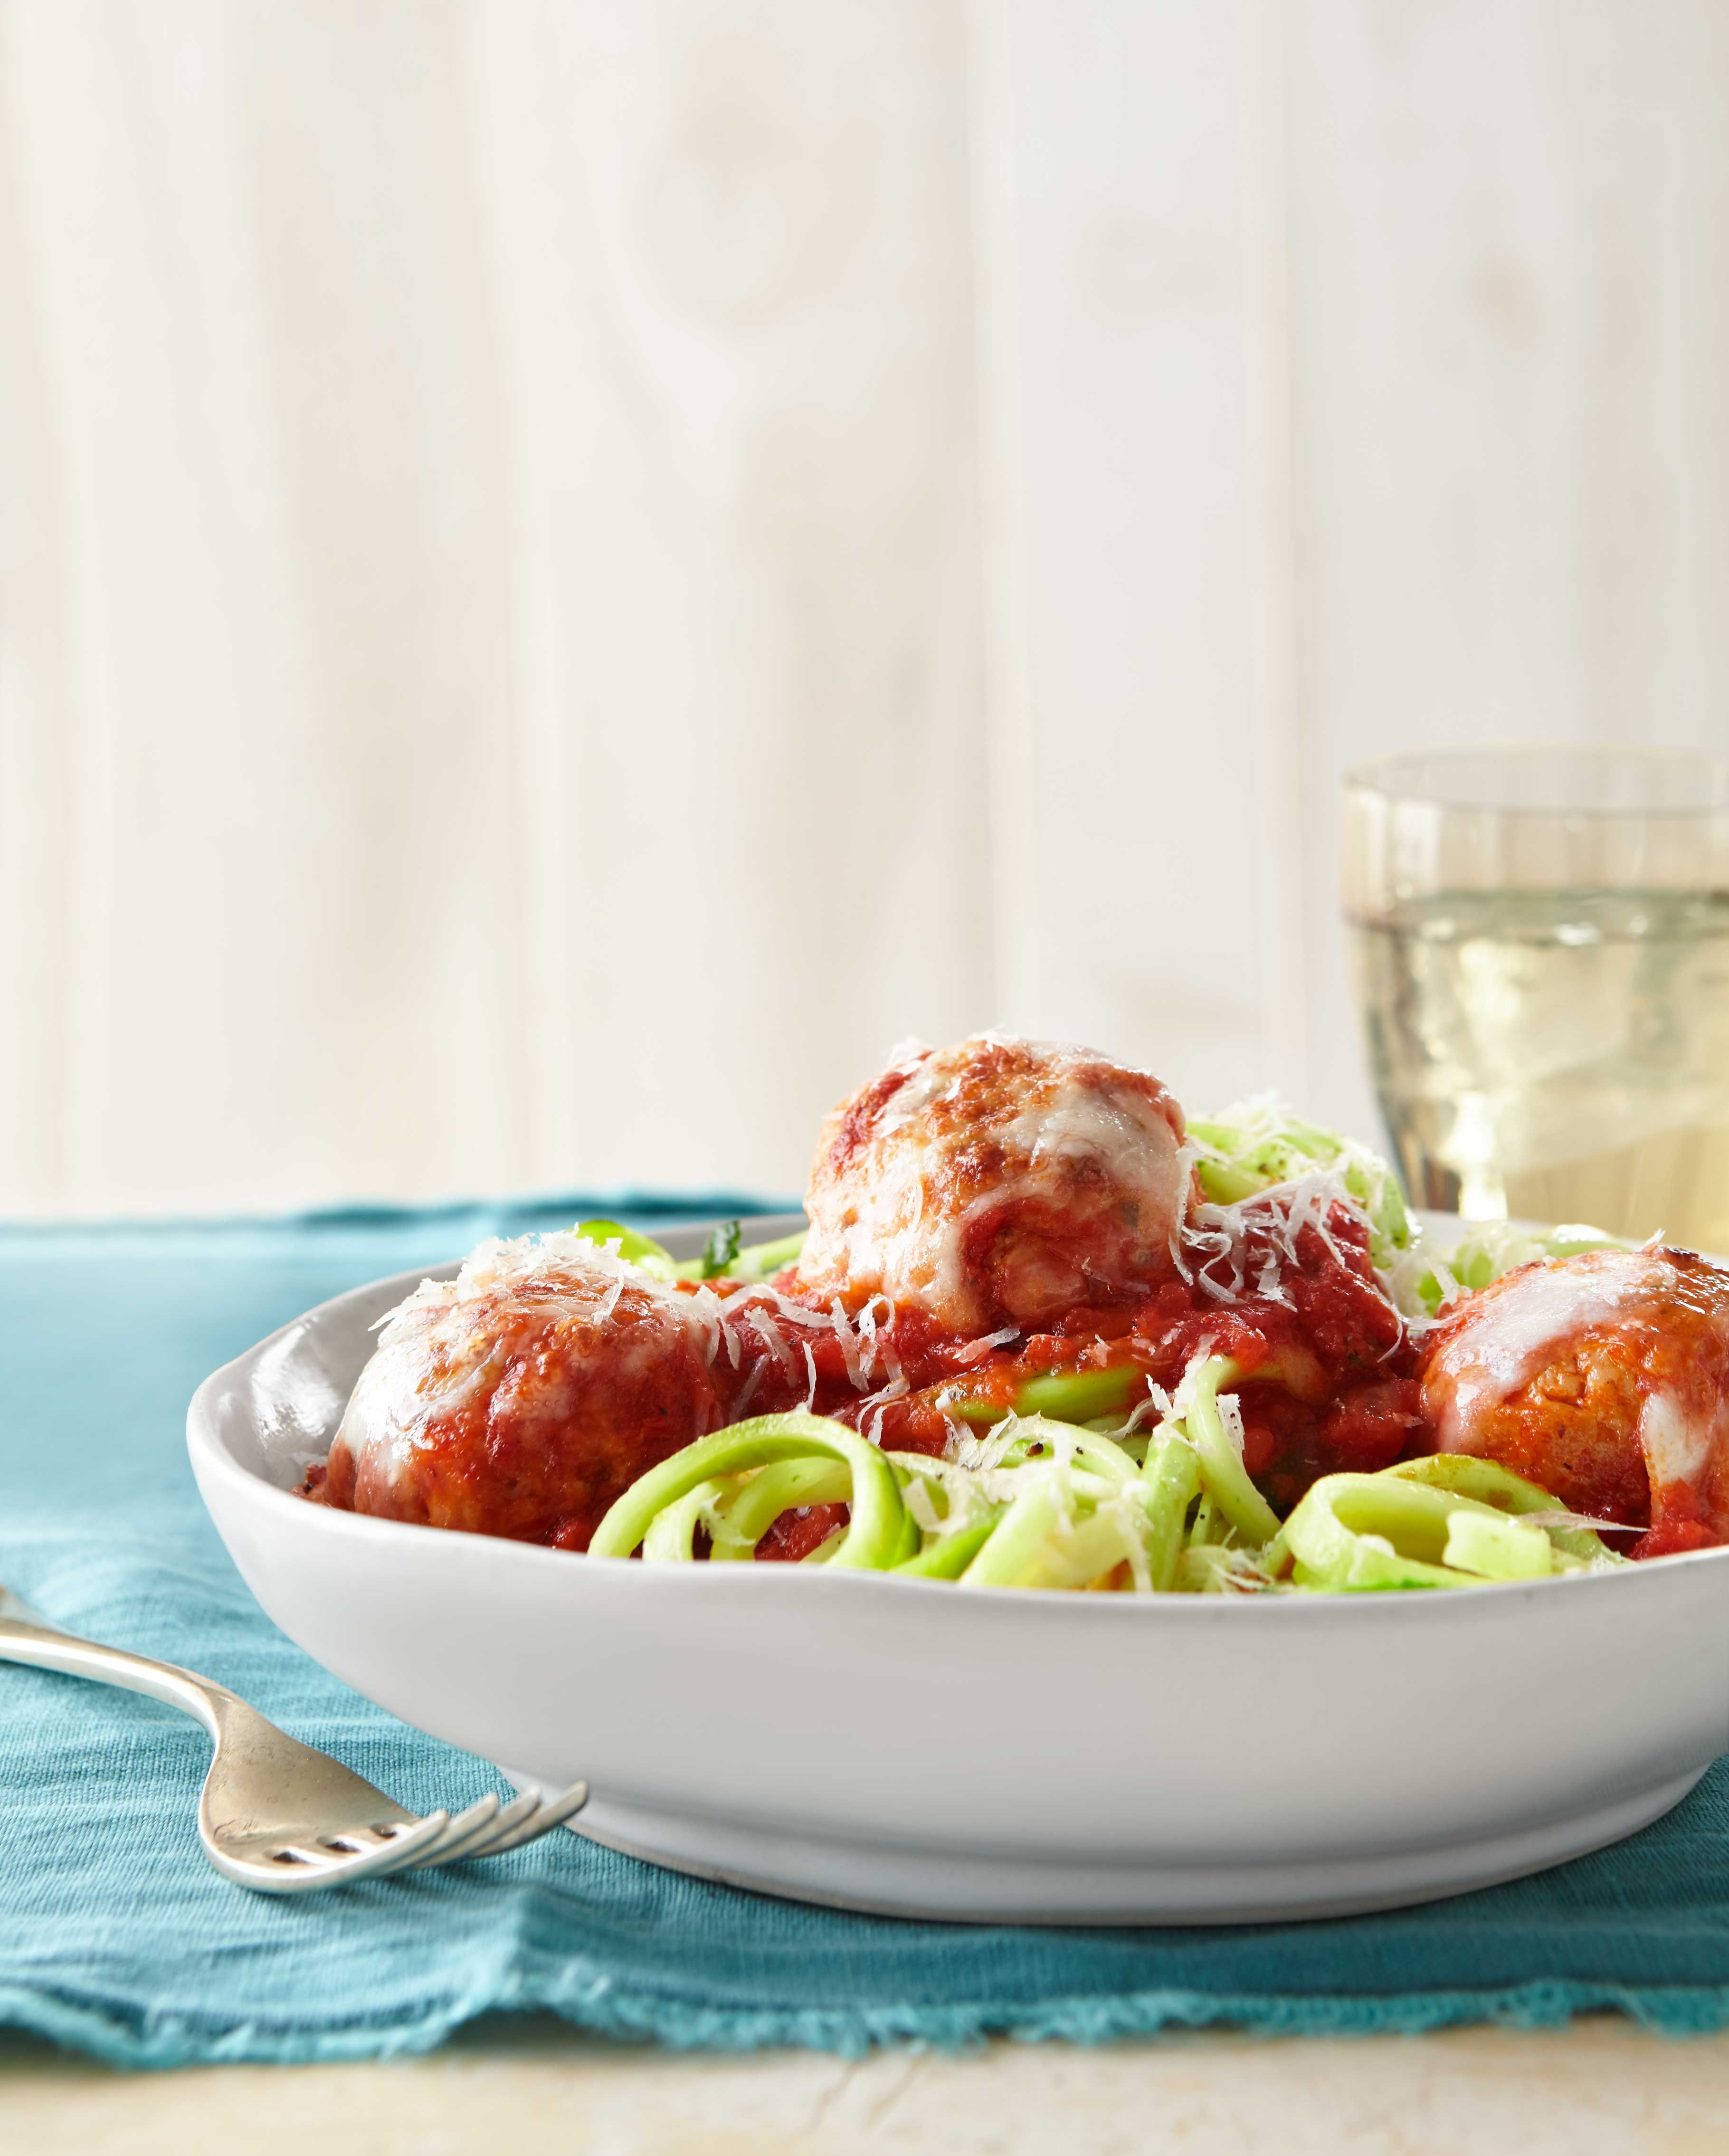 Best Turkey Meatballs Over Zucchini Noodles Recipe - CountryLiving.com